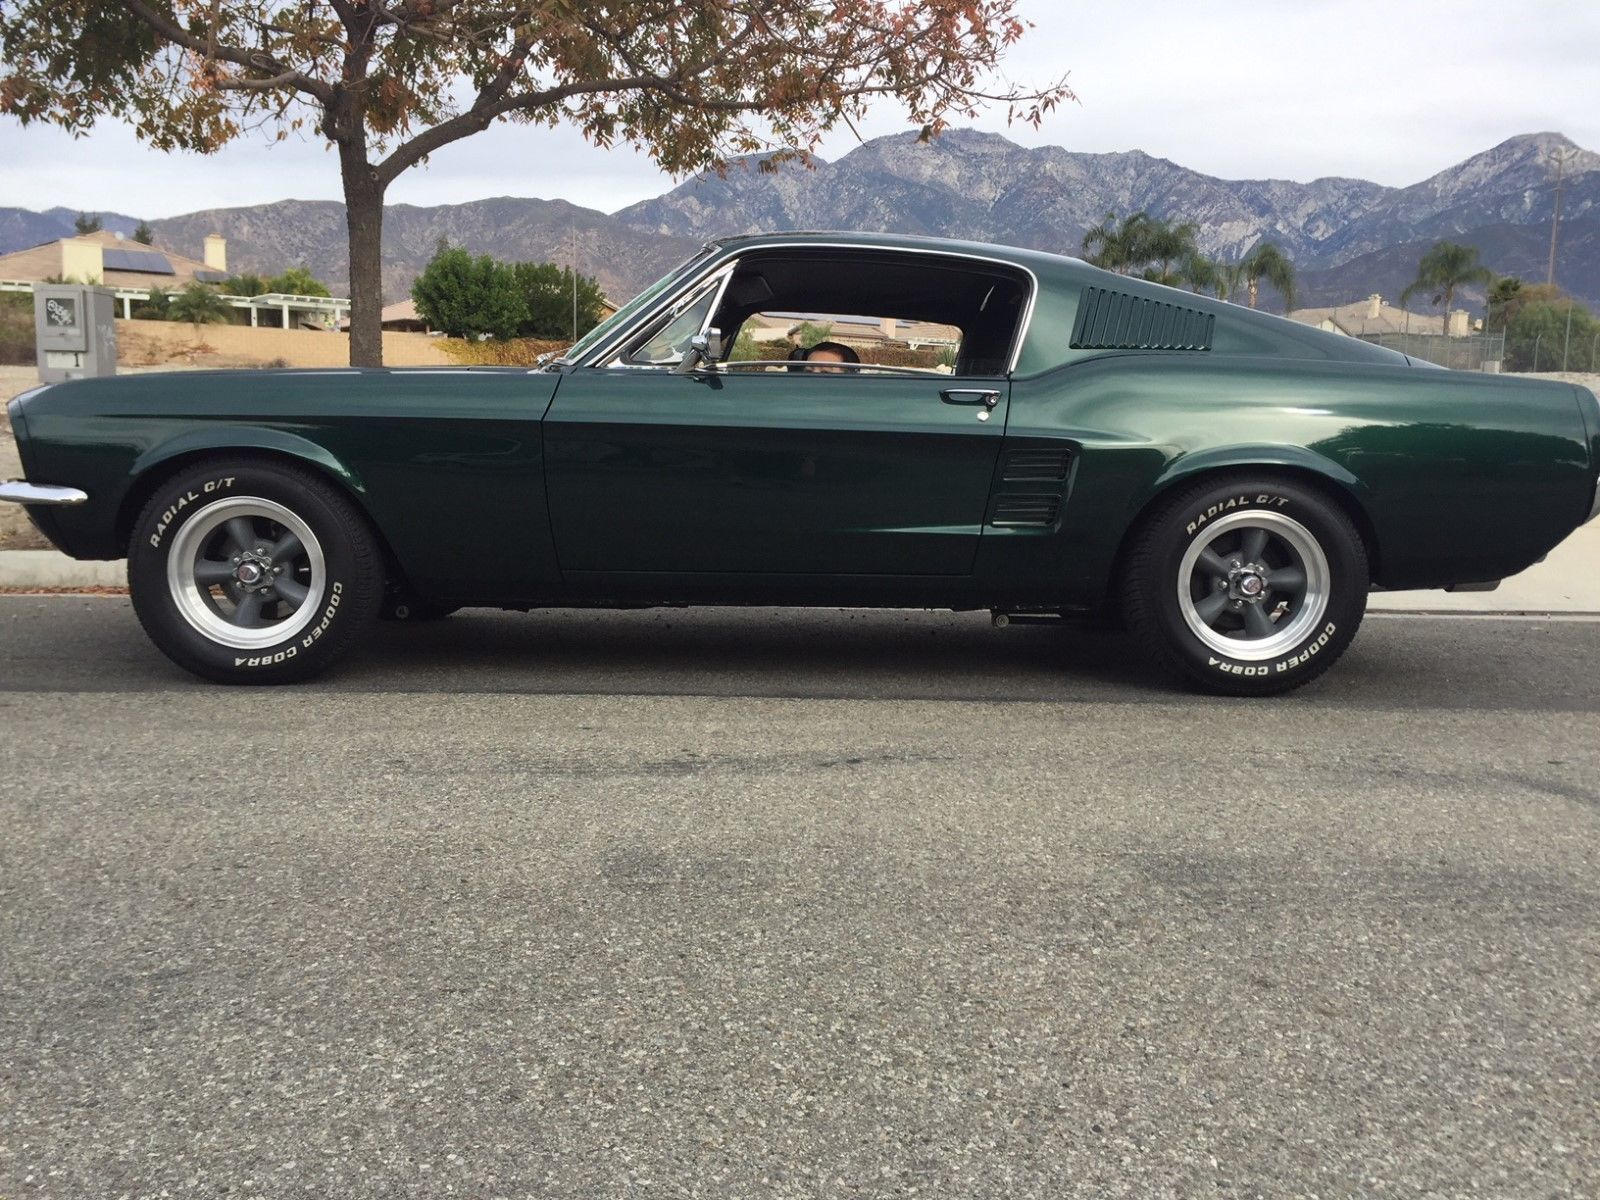 1967 Ford Mustang Fastback Gt Classic Cars Muscle Cars Classic